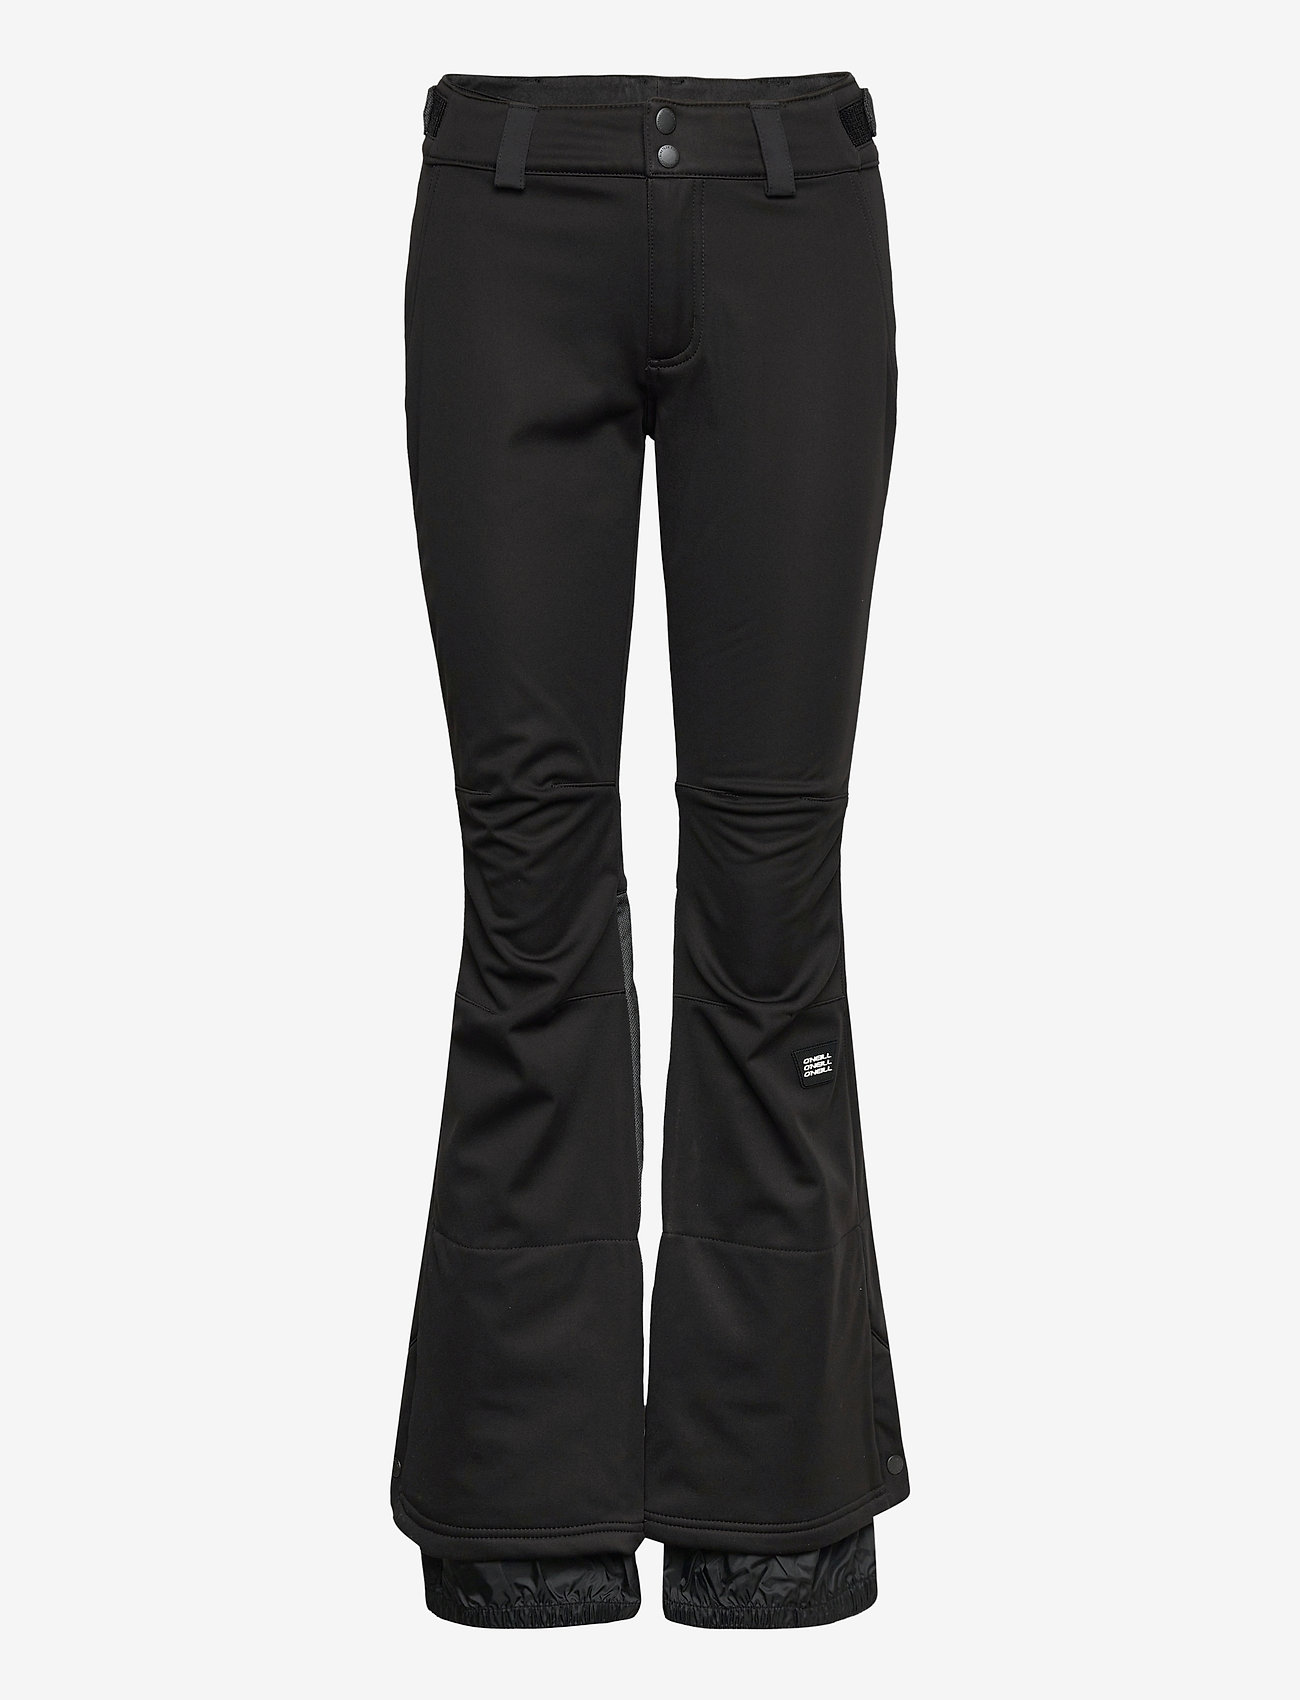 O'Neill - PW SPELL PANTS - skibukser - black out - 0